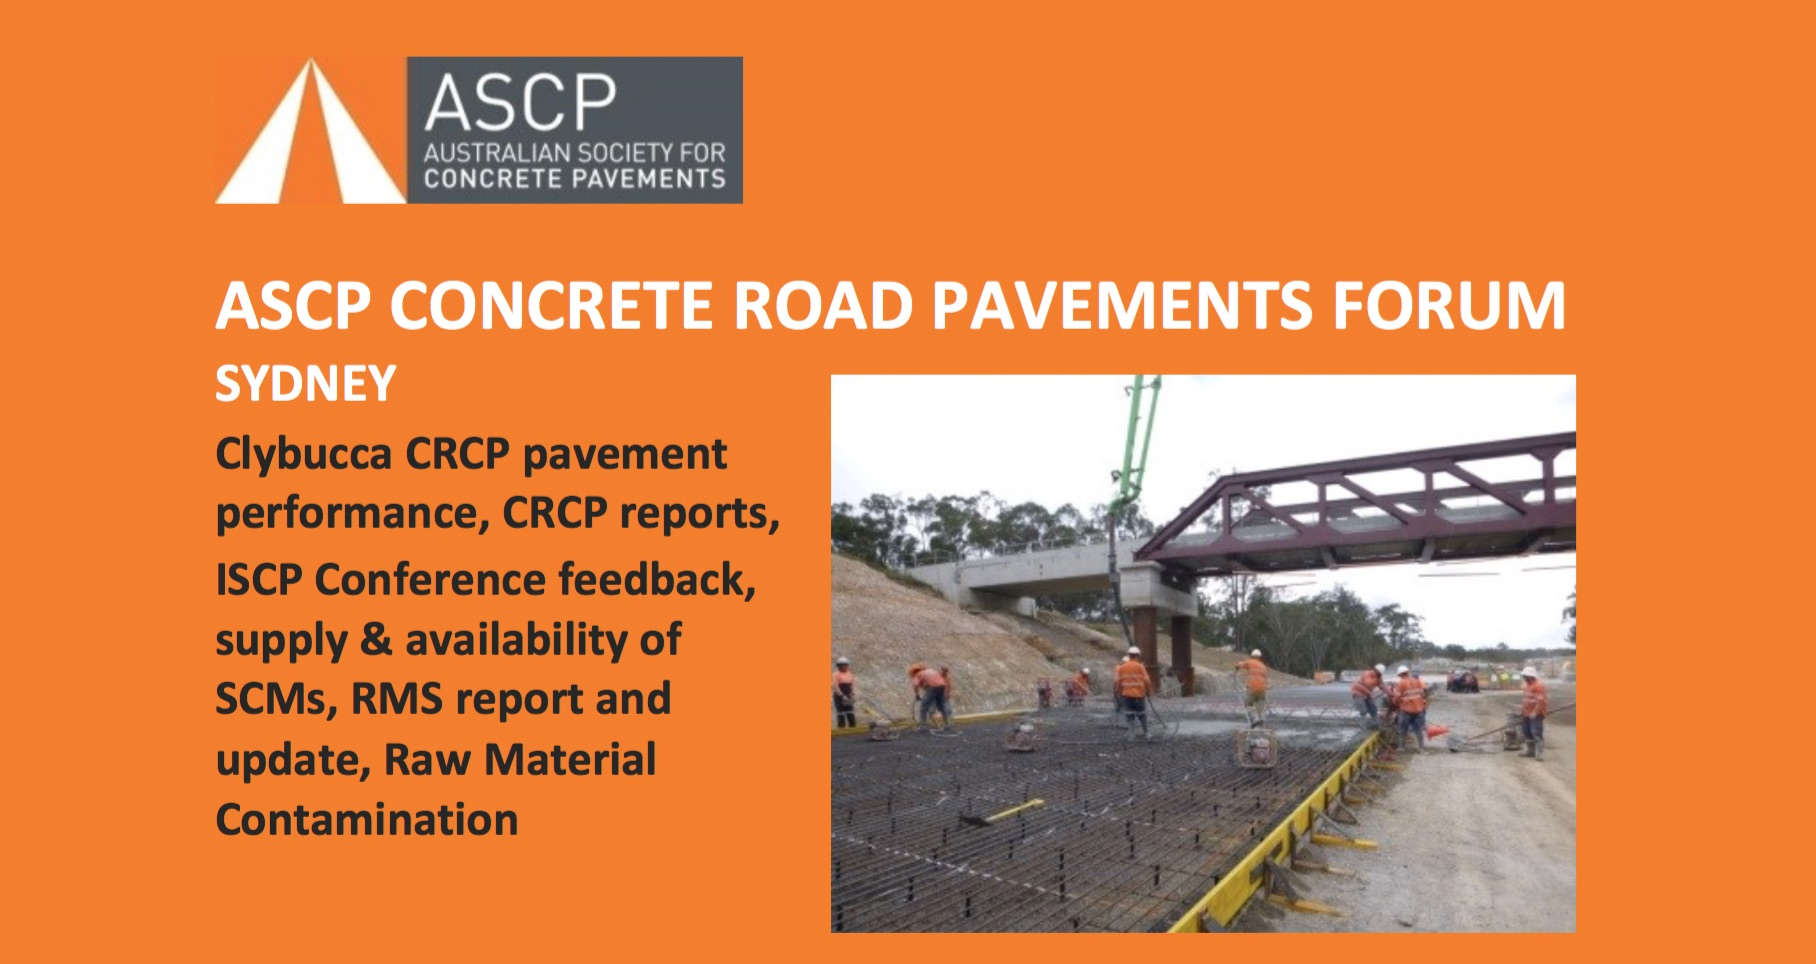 SYDNEY Australia: ASCP Concrete Road Pavements Forum to be Held Monday, October 17